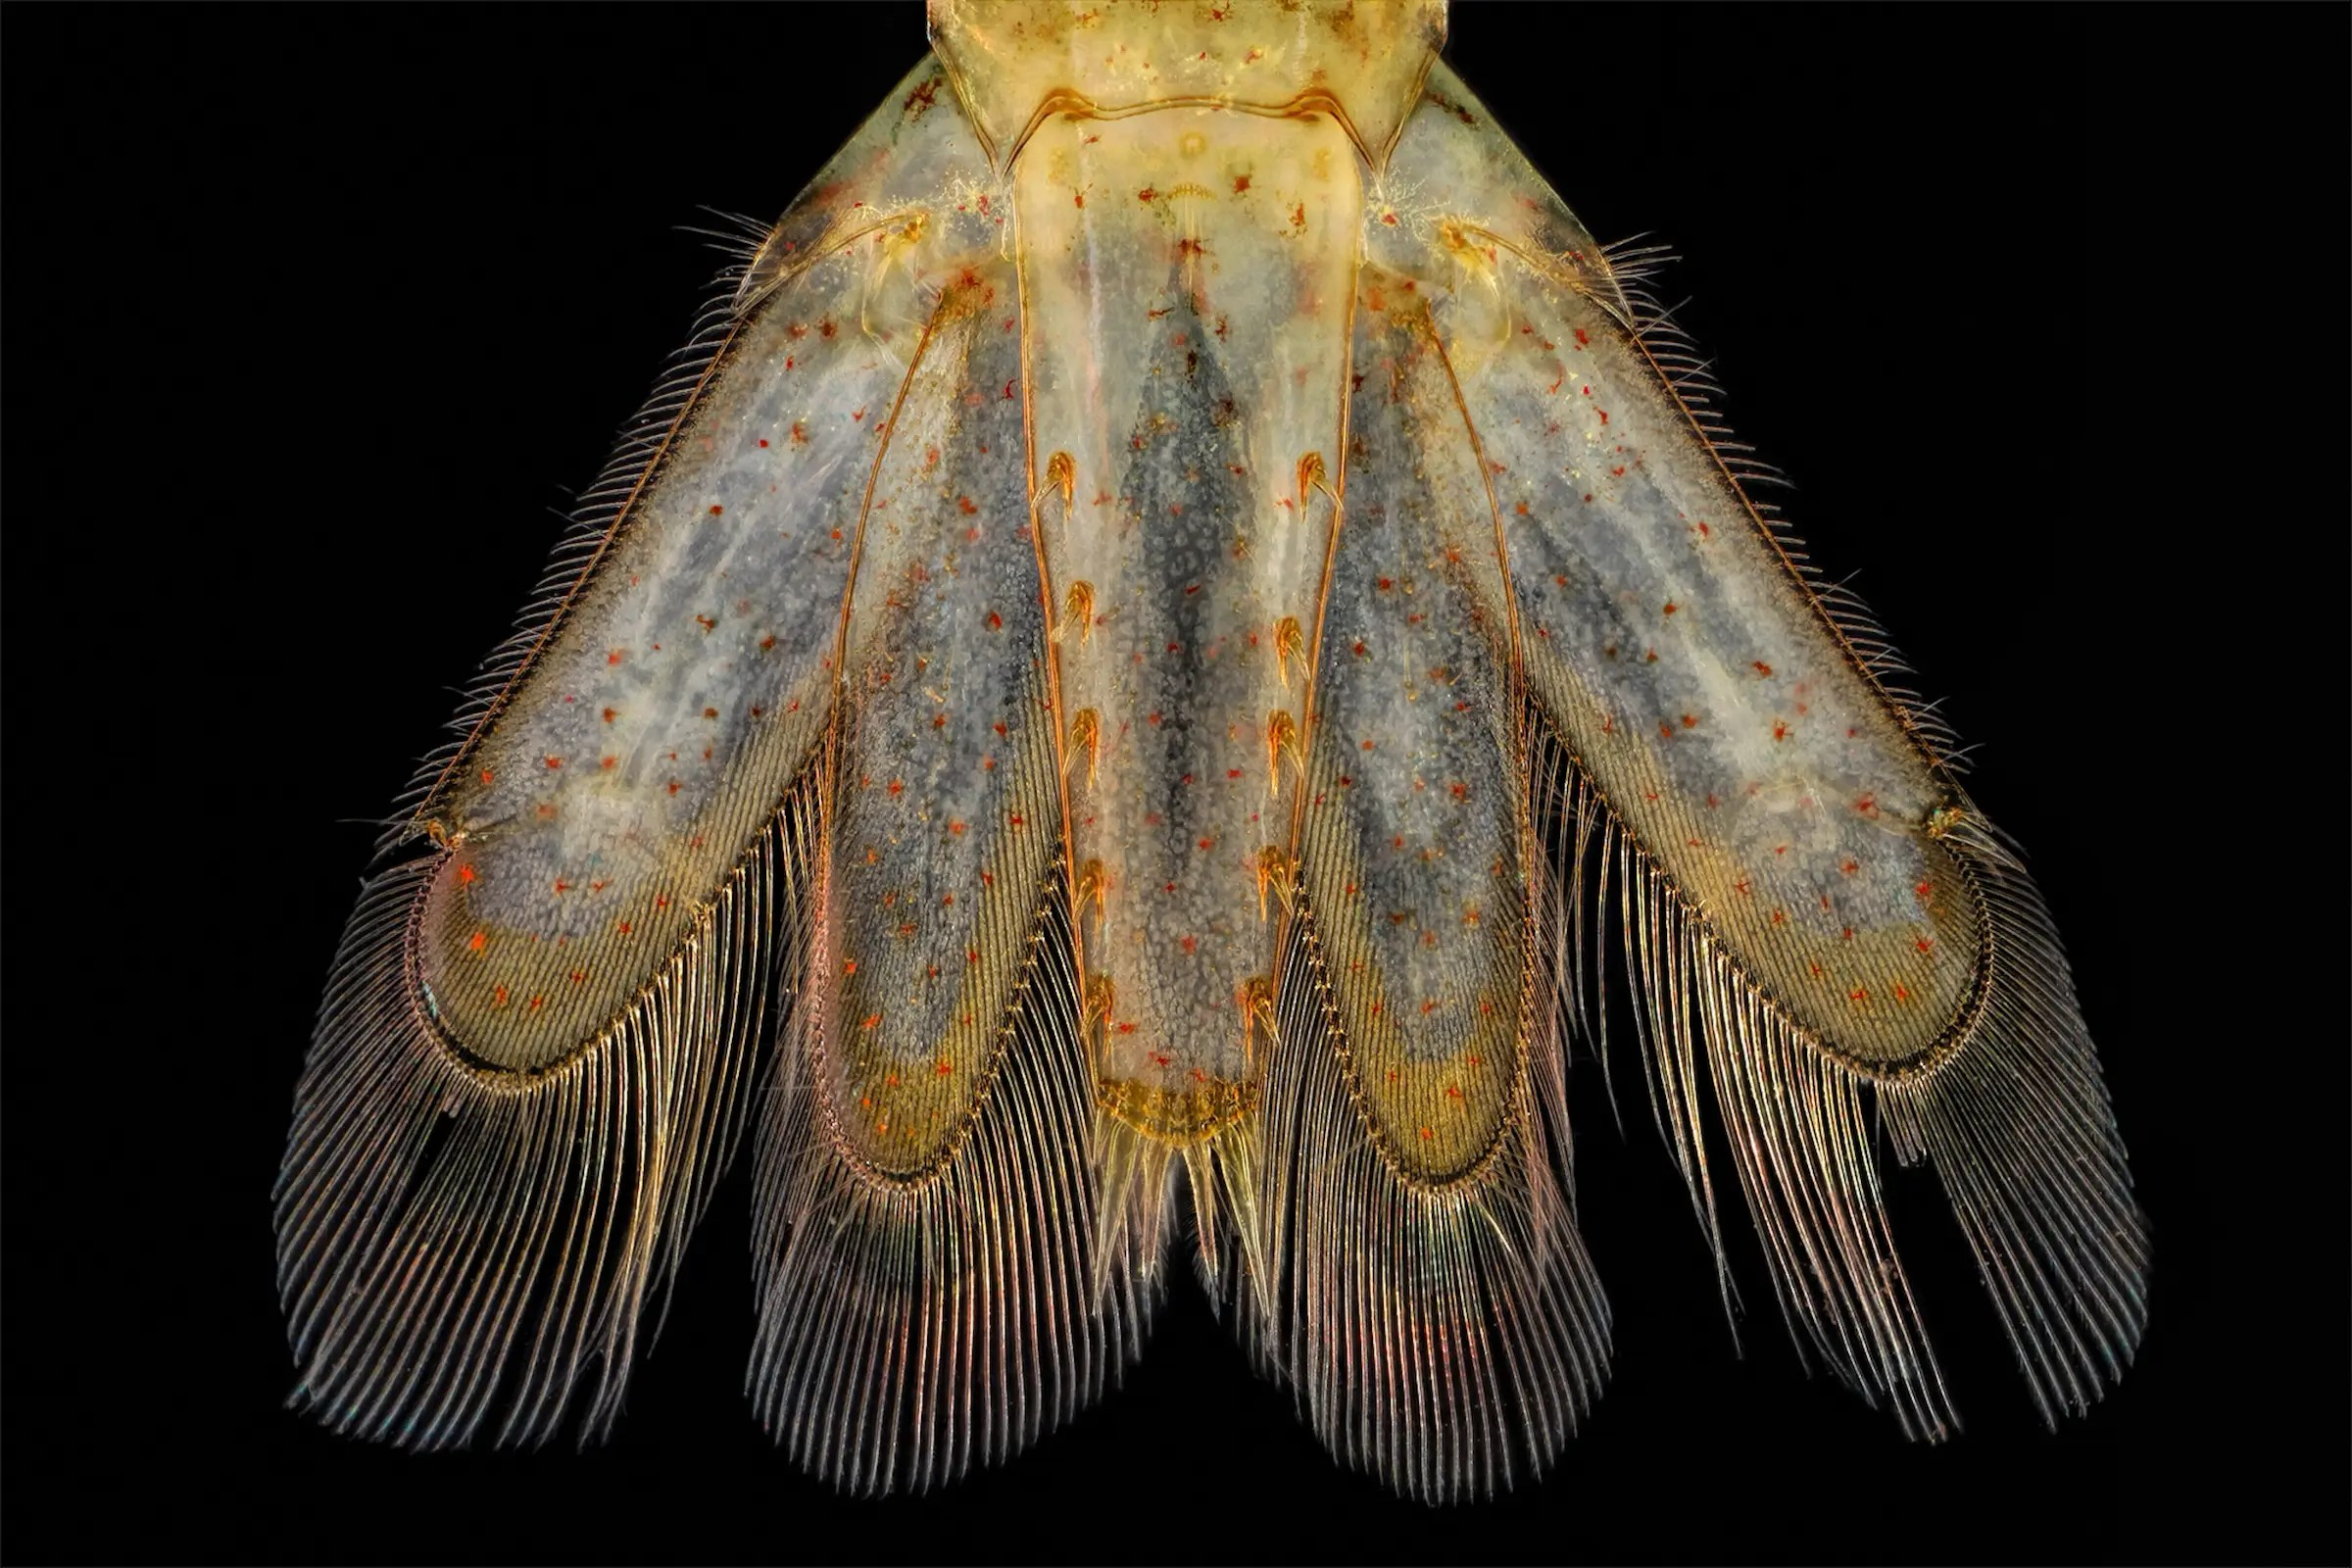 Tail of a small shrimp